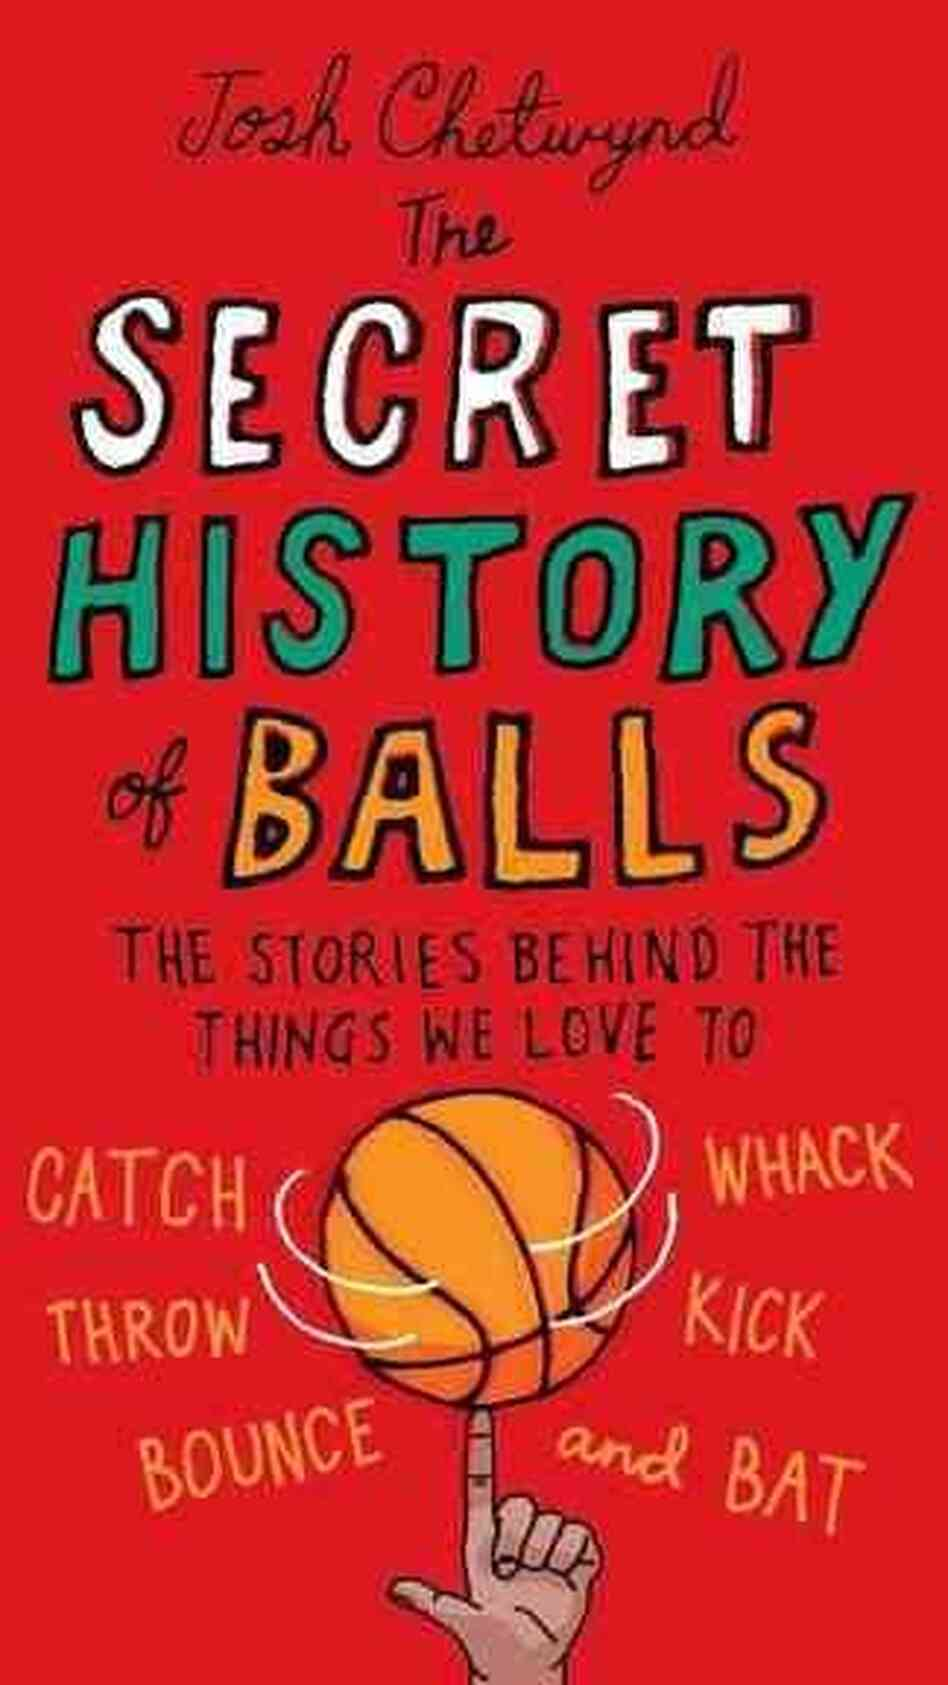 The Secret History of Balls